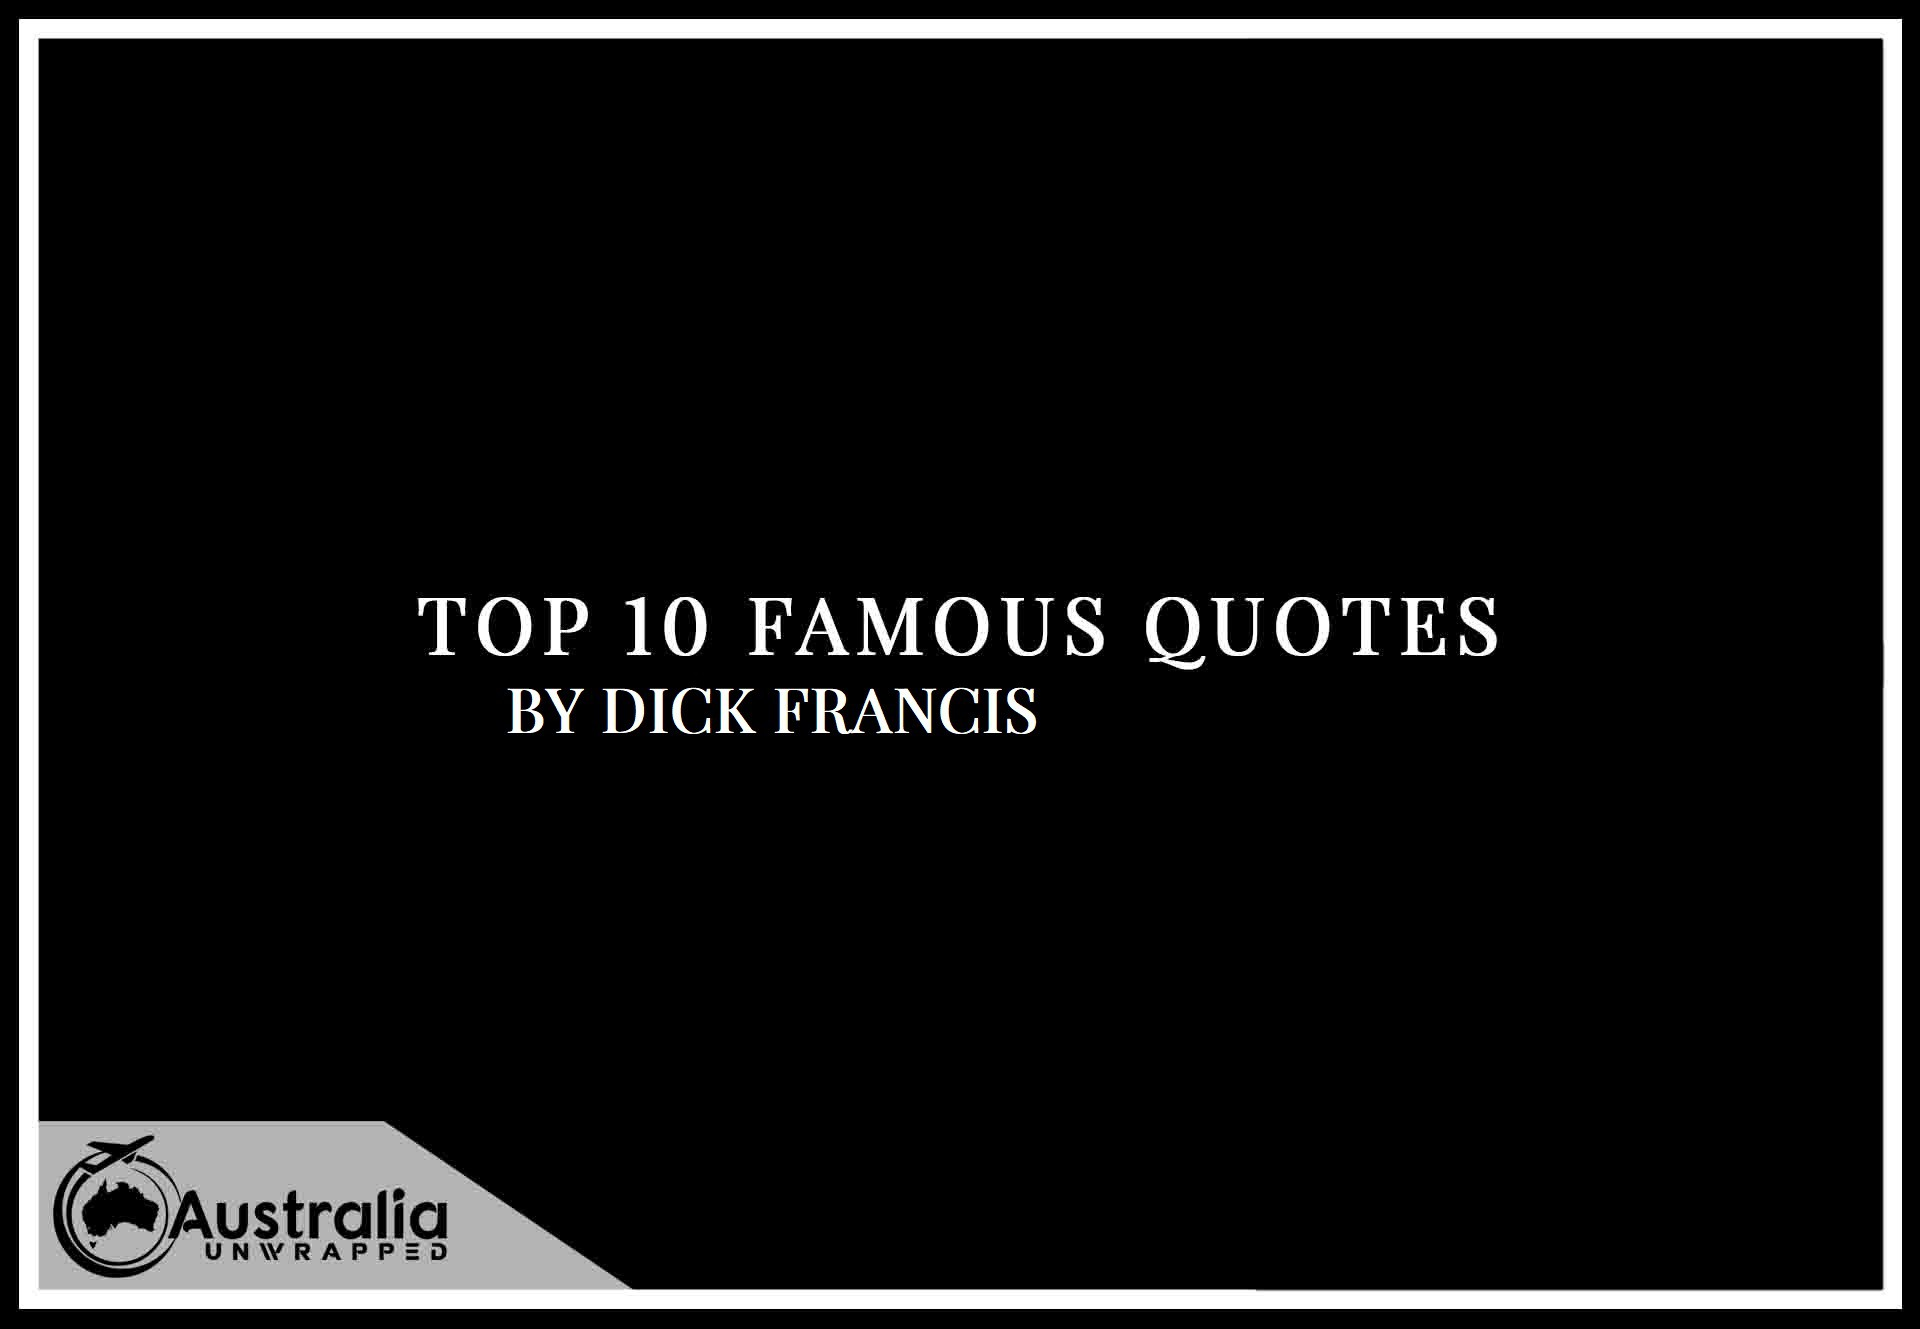 Top 10 Famous Quotes by Author Dick Francis